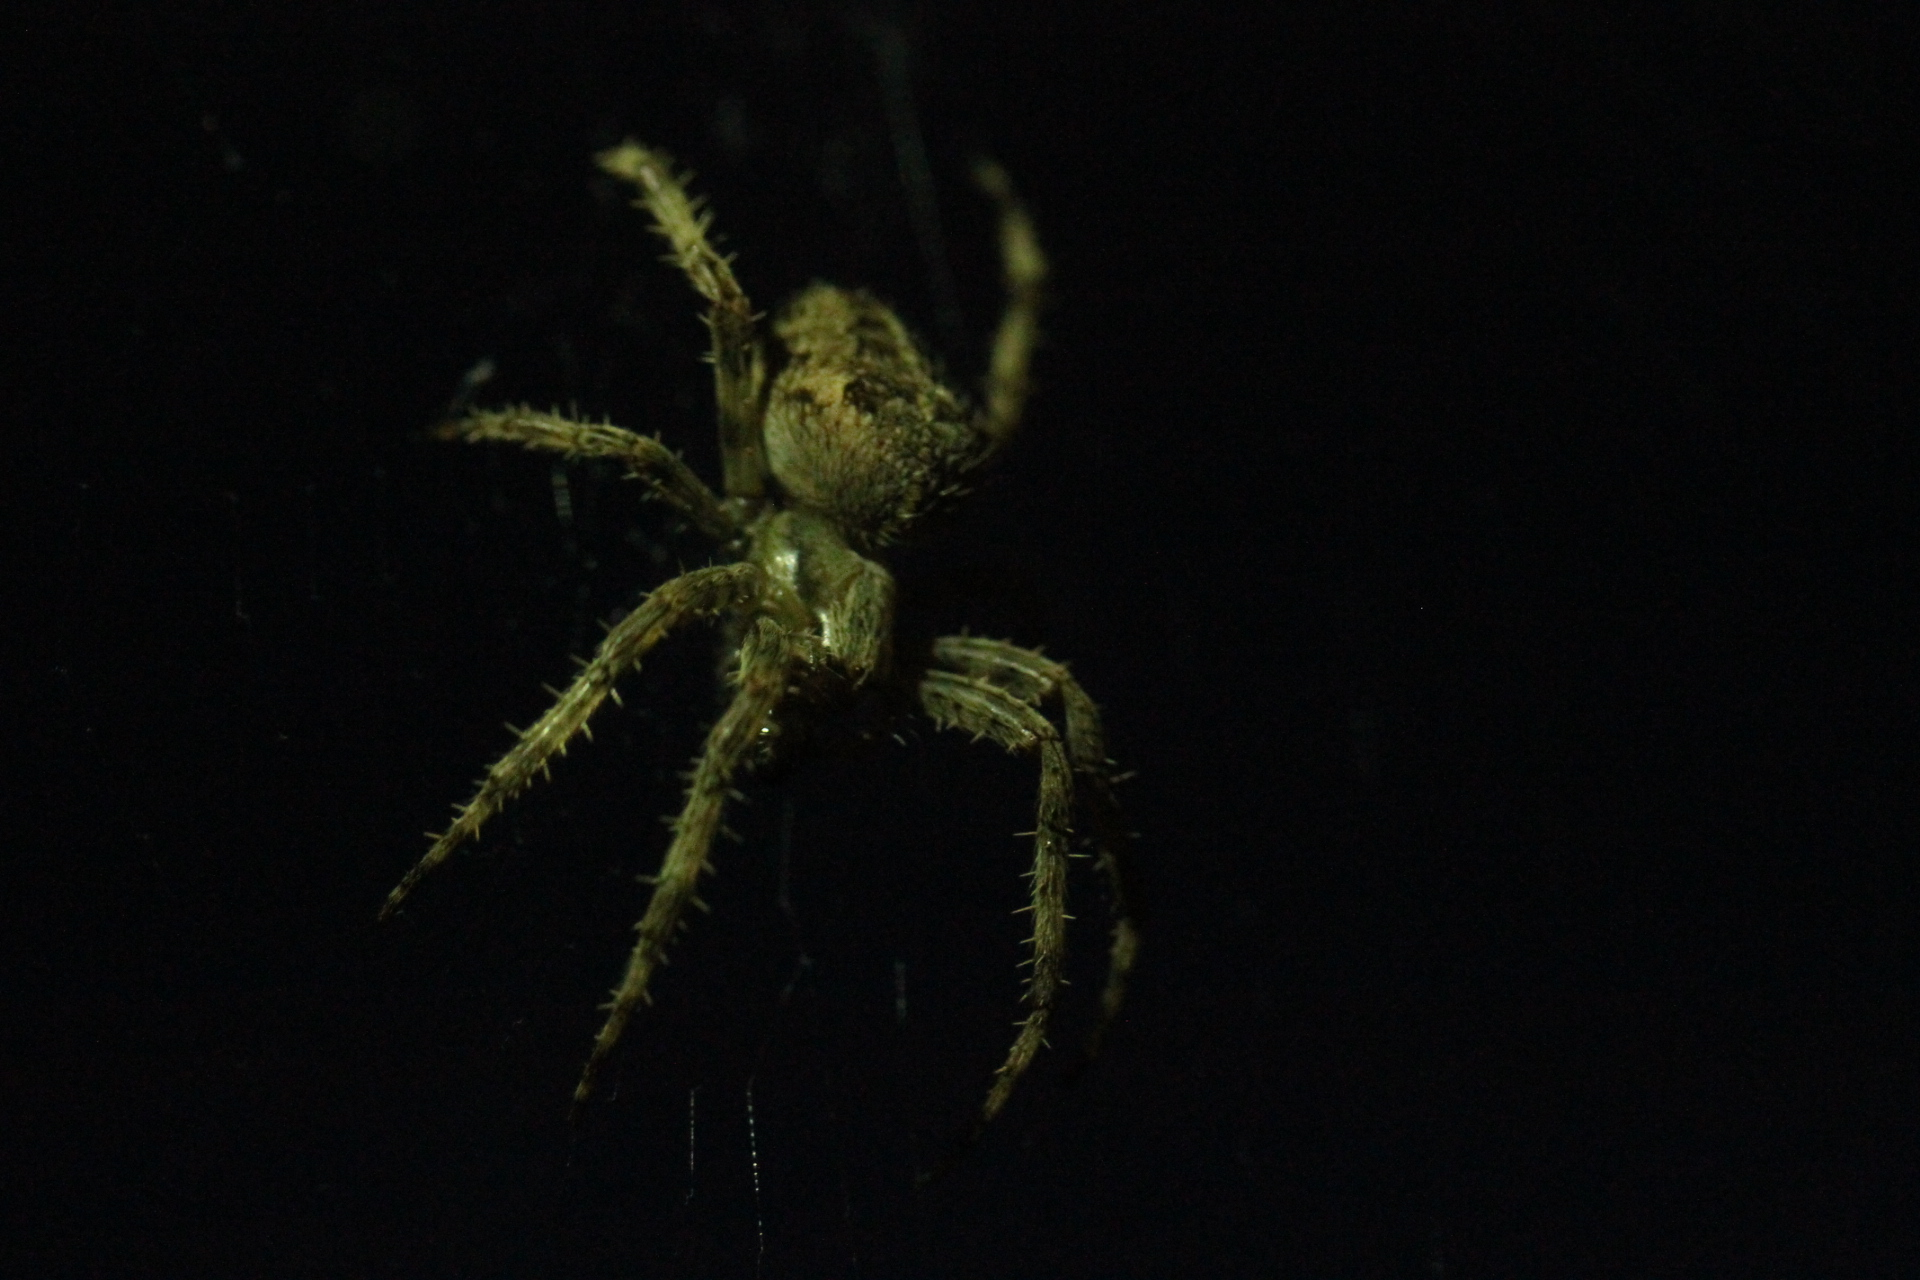 The night time spider